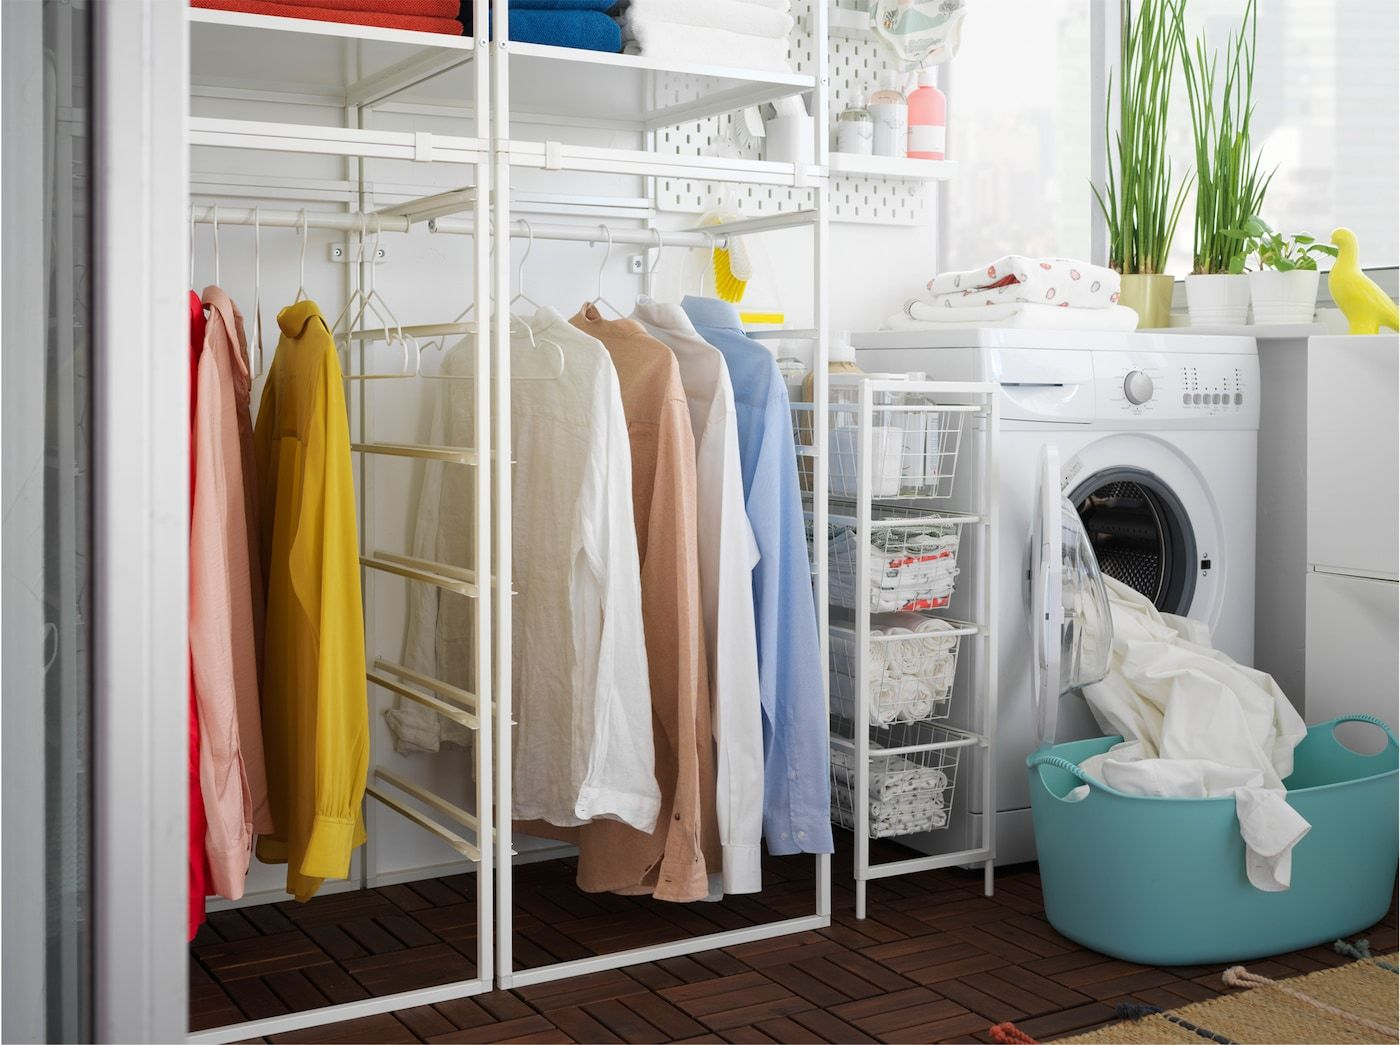 Affordable Laundry Room With Jonaxel Shelving Unit Laundry Room